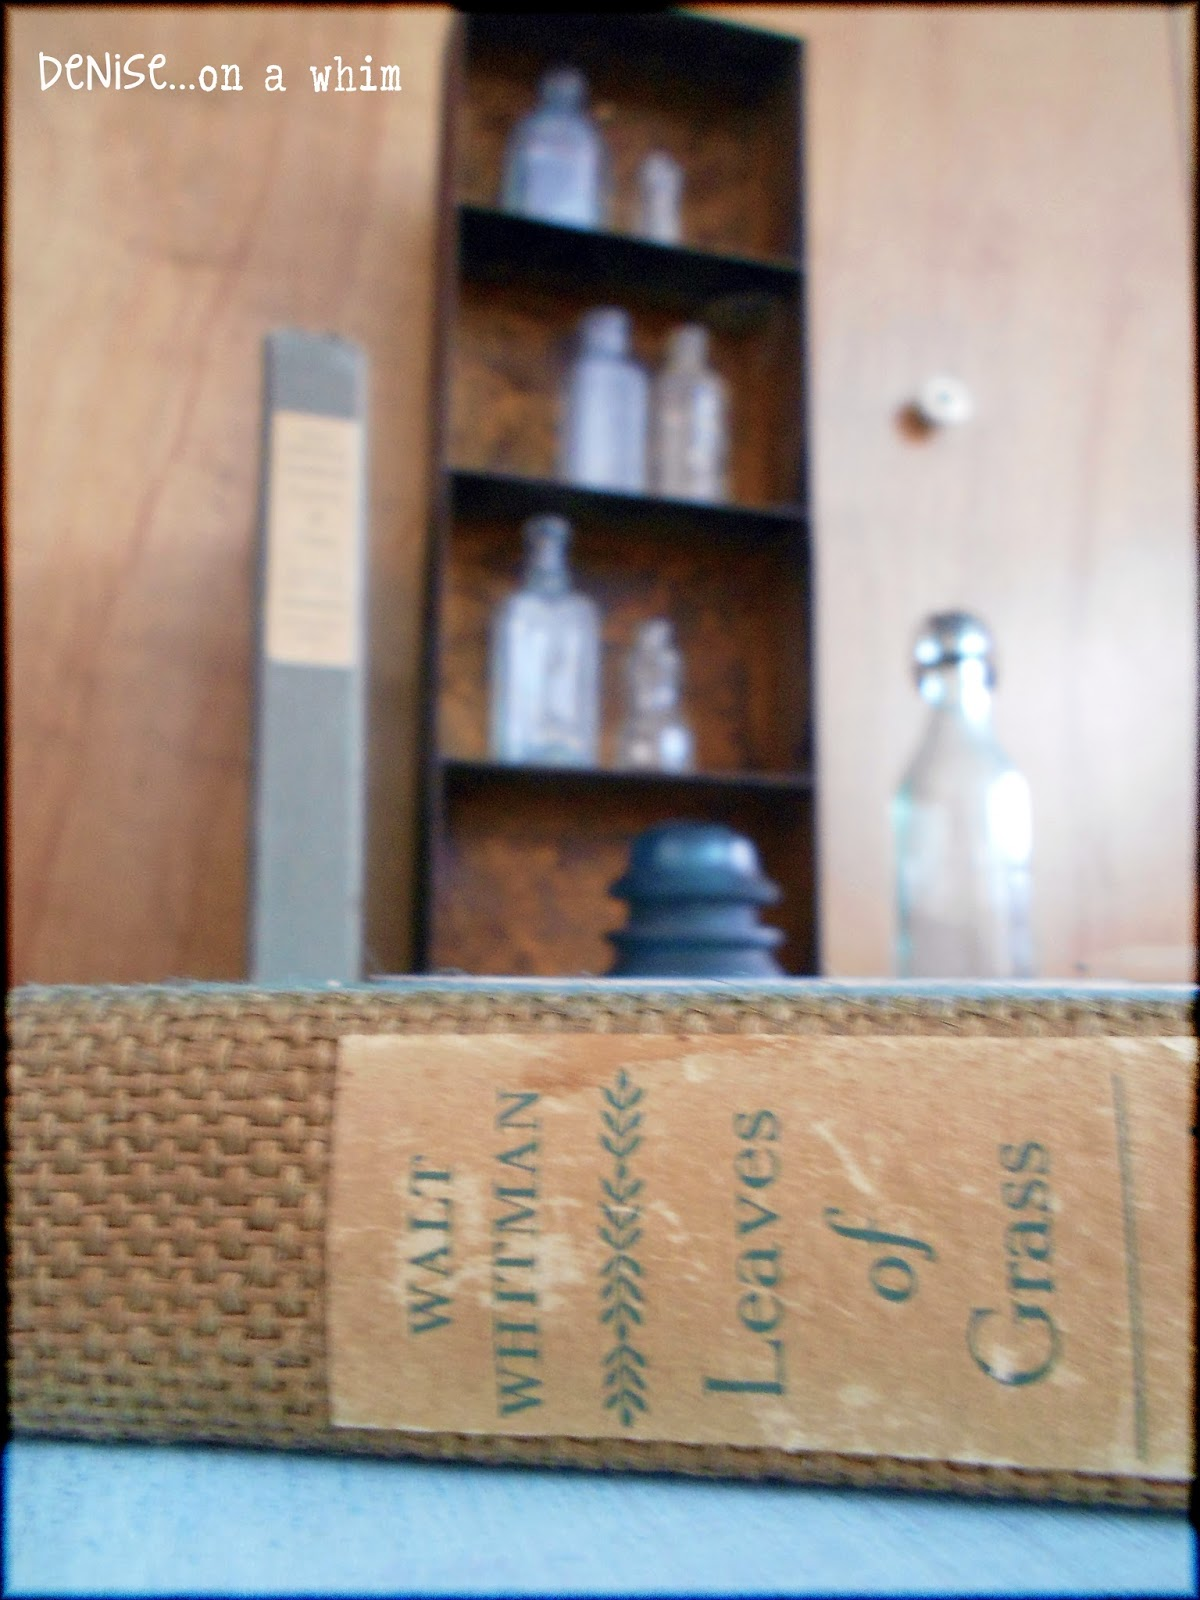 Vintage copy of Leaves of Grass via http://deniseonawhim.blogspot.com